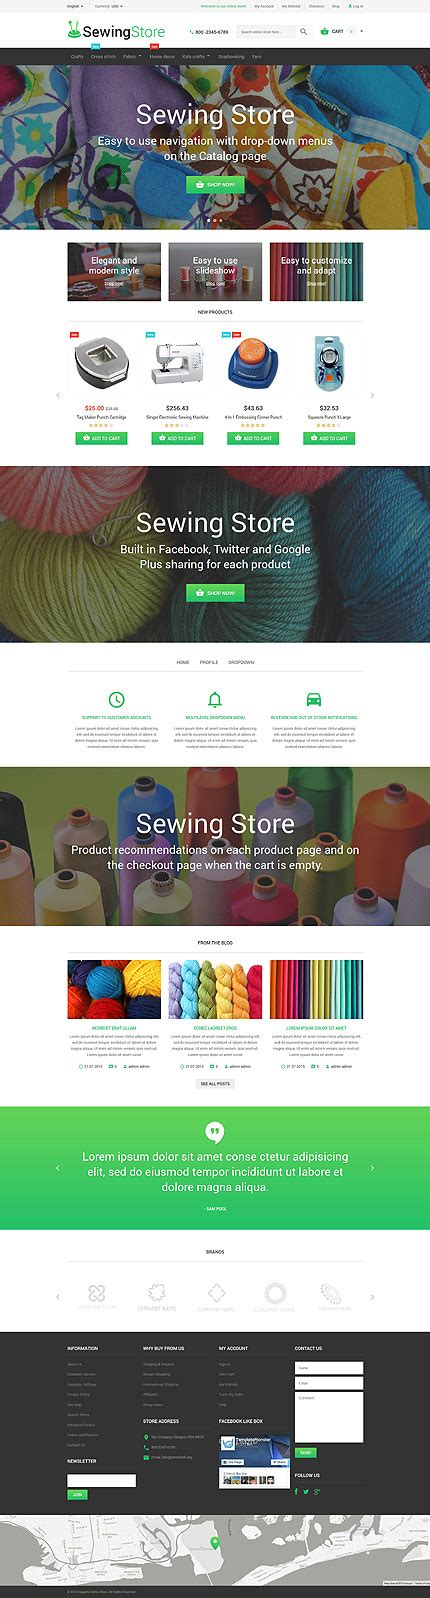 magento layout xml set template most popular type magento themes template 55176